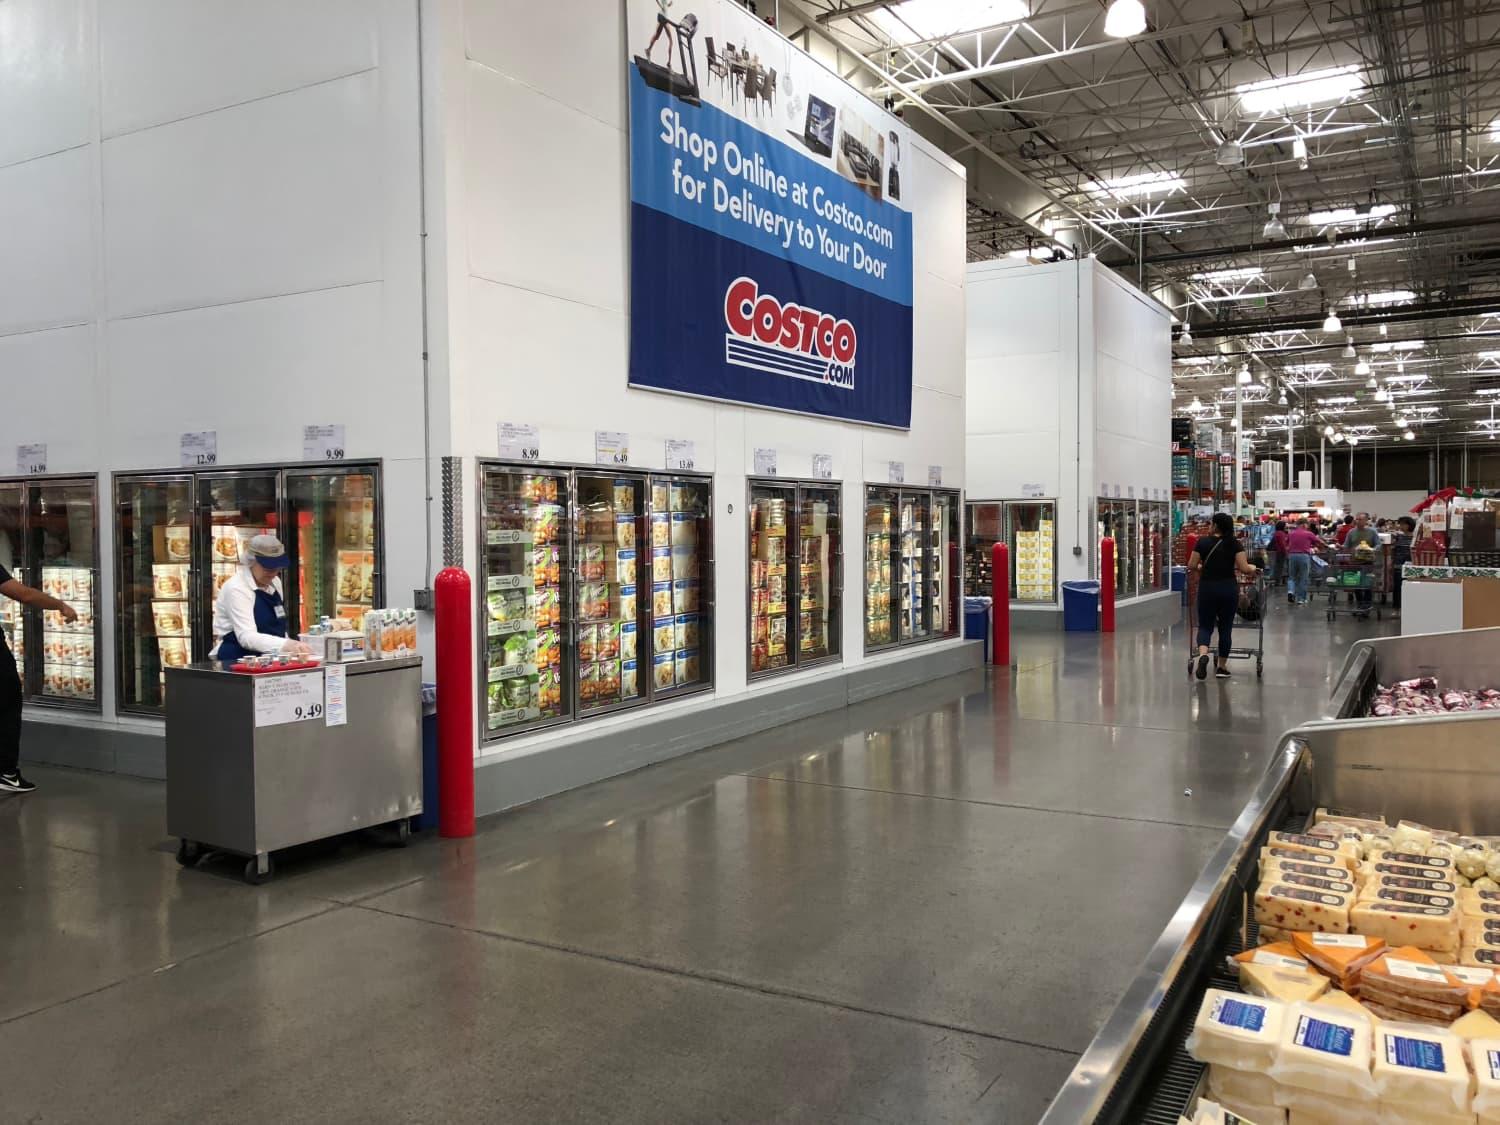 The Best New Freezer Finds from Costco